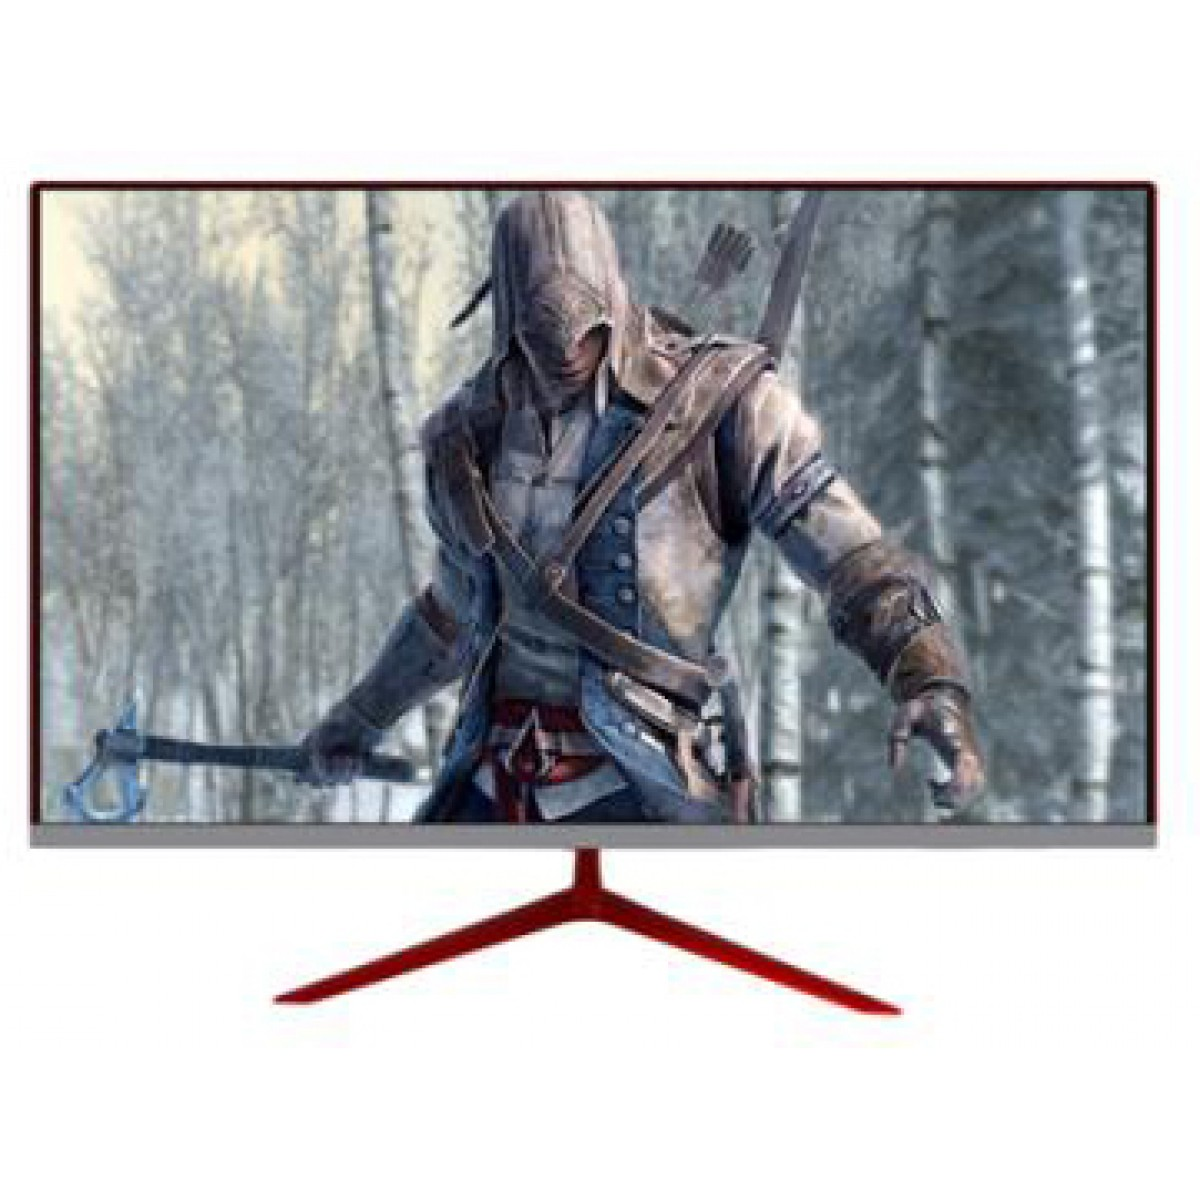 Monitor Gamer Bluecase 27 Pol, Full HD, 144Hz, 1ms, BM272GW